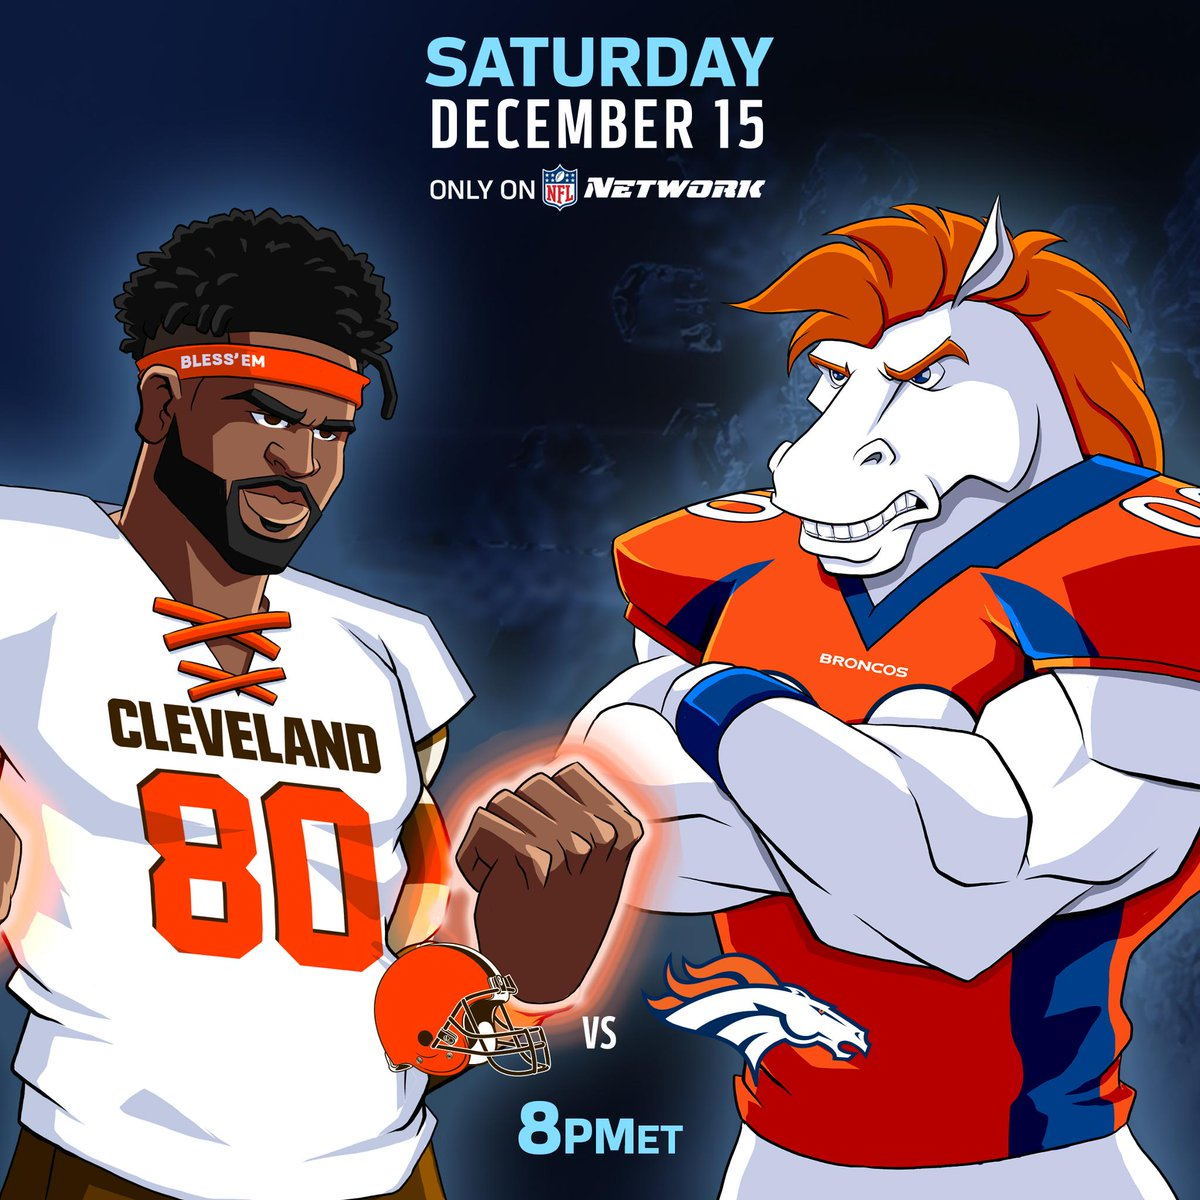 The @Browns! The @Broncos!  Prime time on a Saturday! 📺: 8pm ET. Only on @nflnetwork. #CLEvsDEN